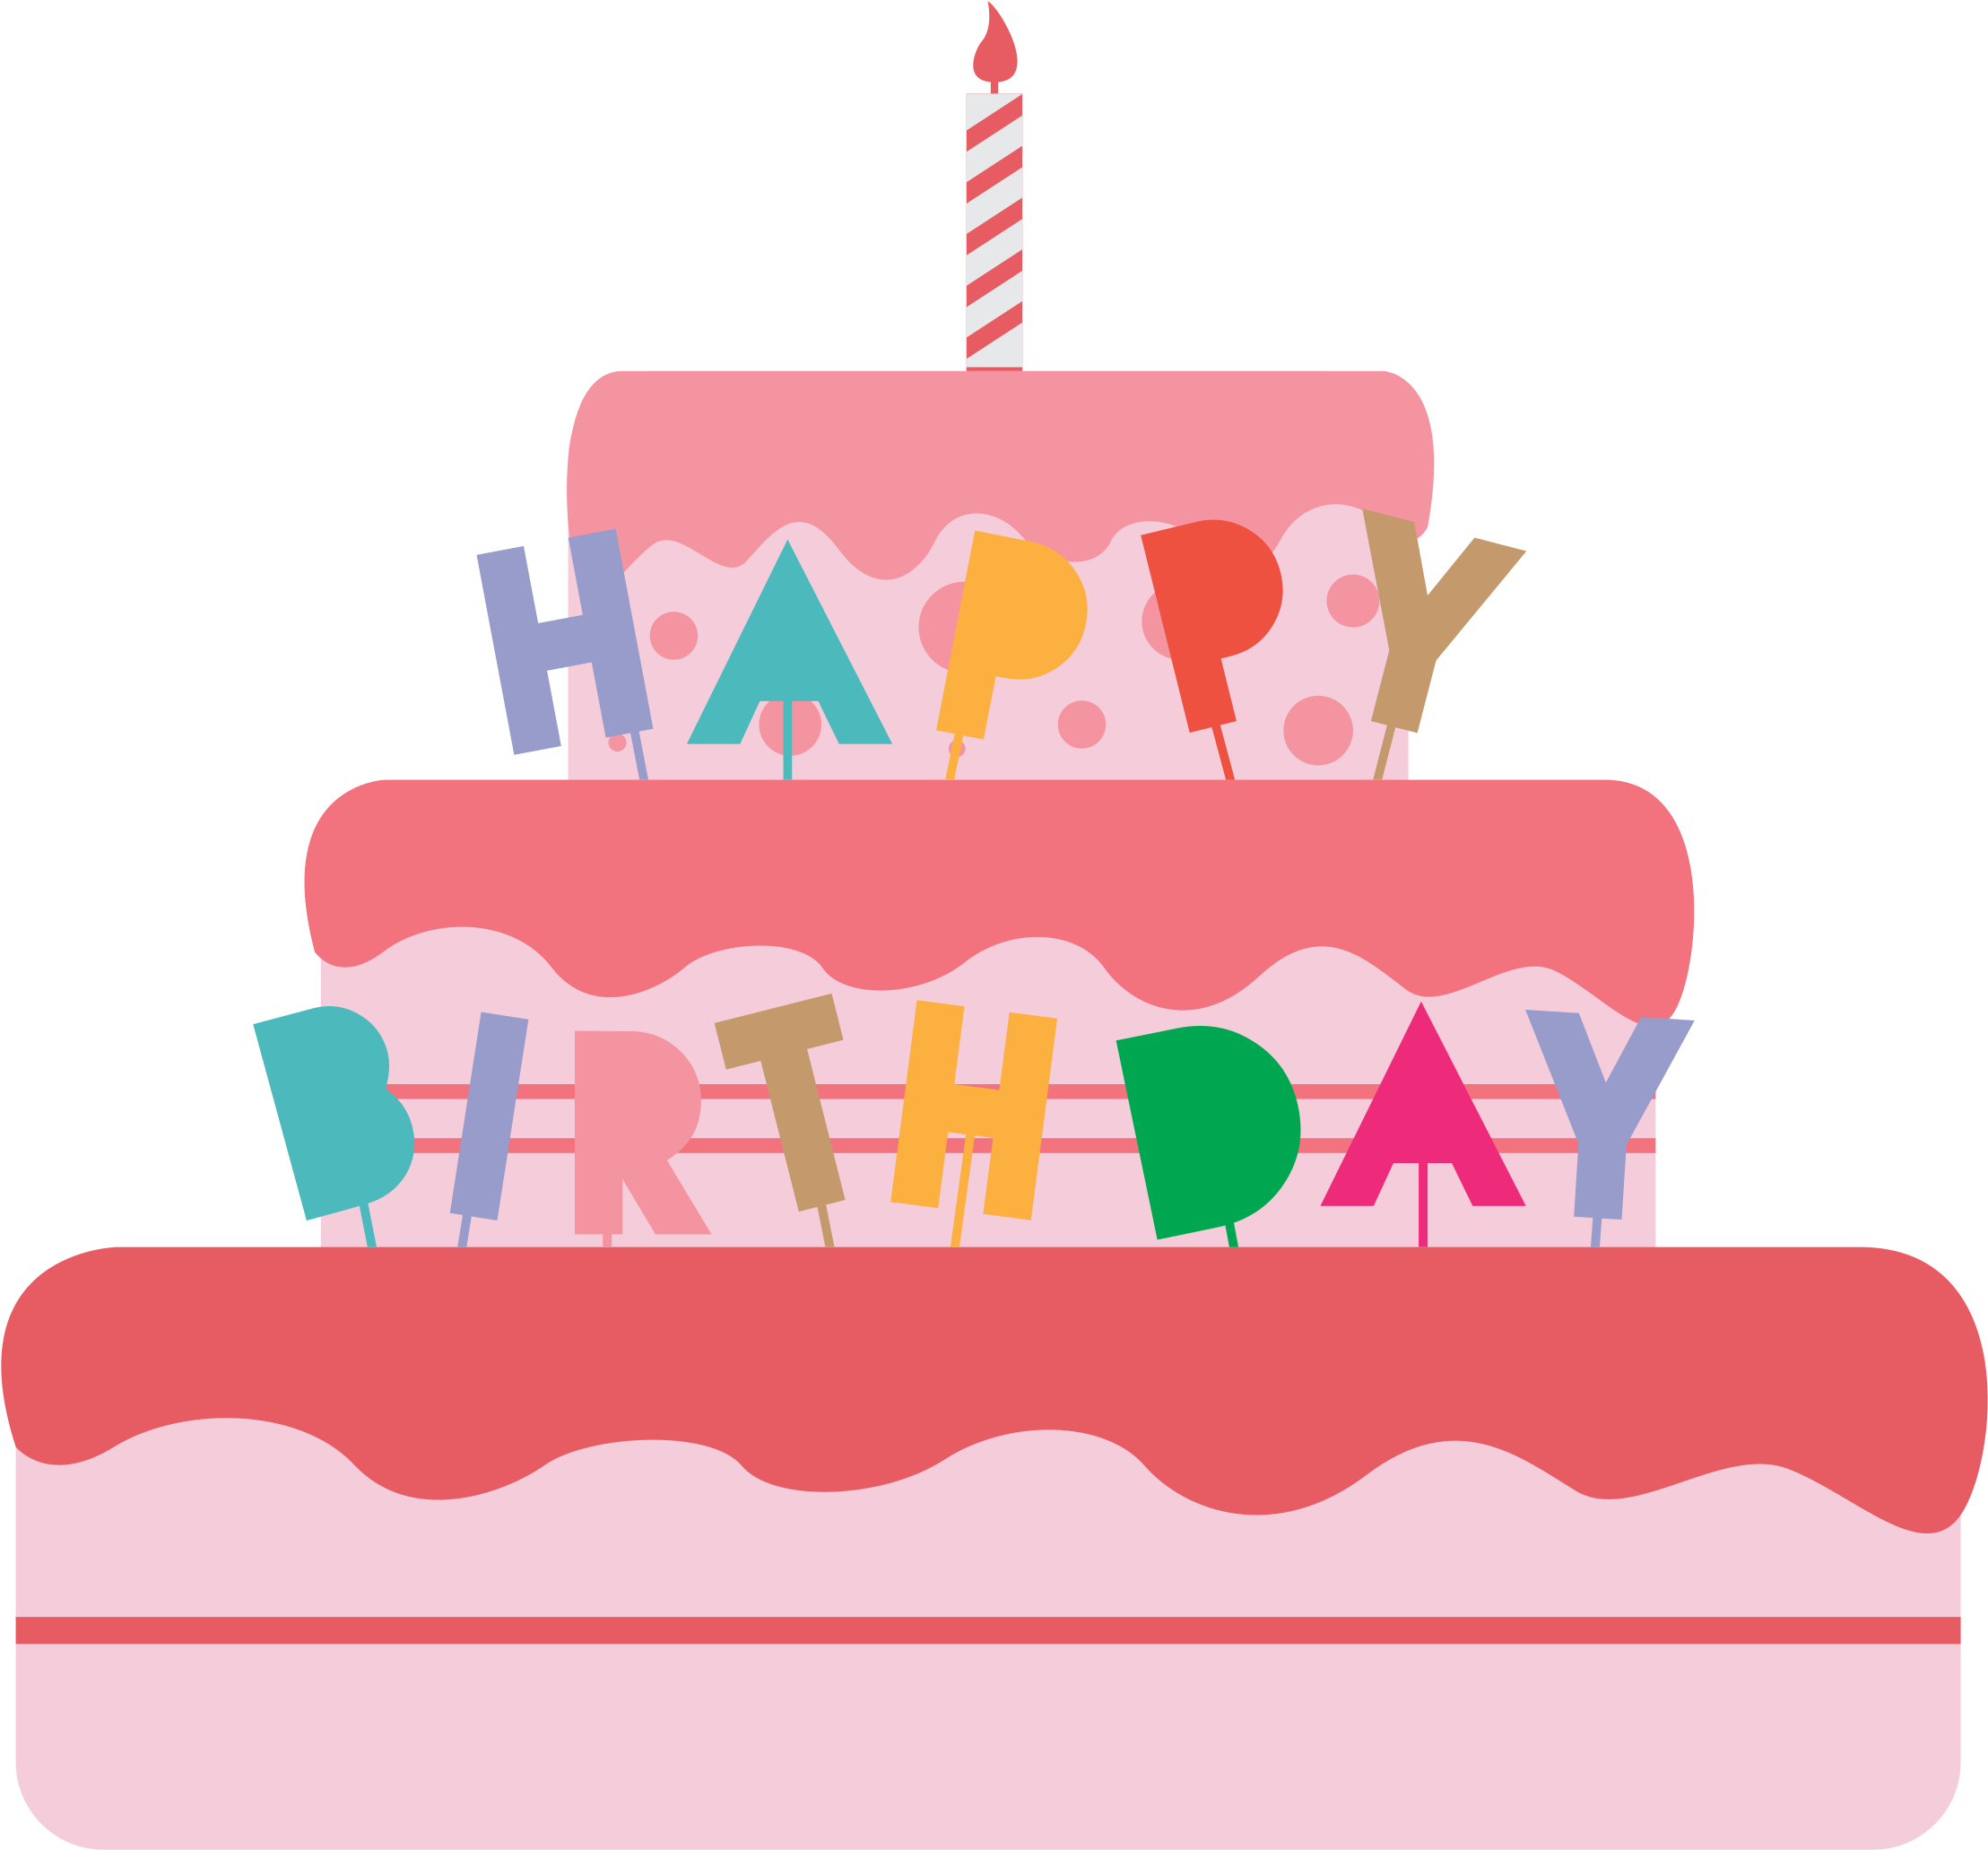 Pleasant Big Image Birthday Cake Vector Png Clipart Full Size Clipart Personalised Birthday Cards Beptaeletsinfo